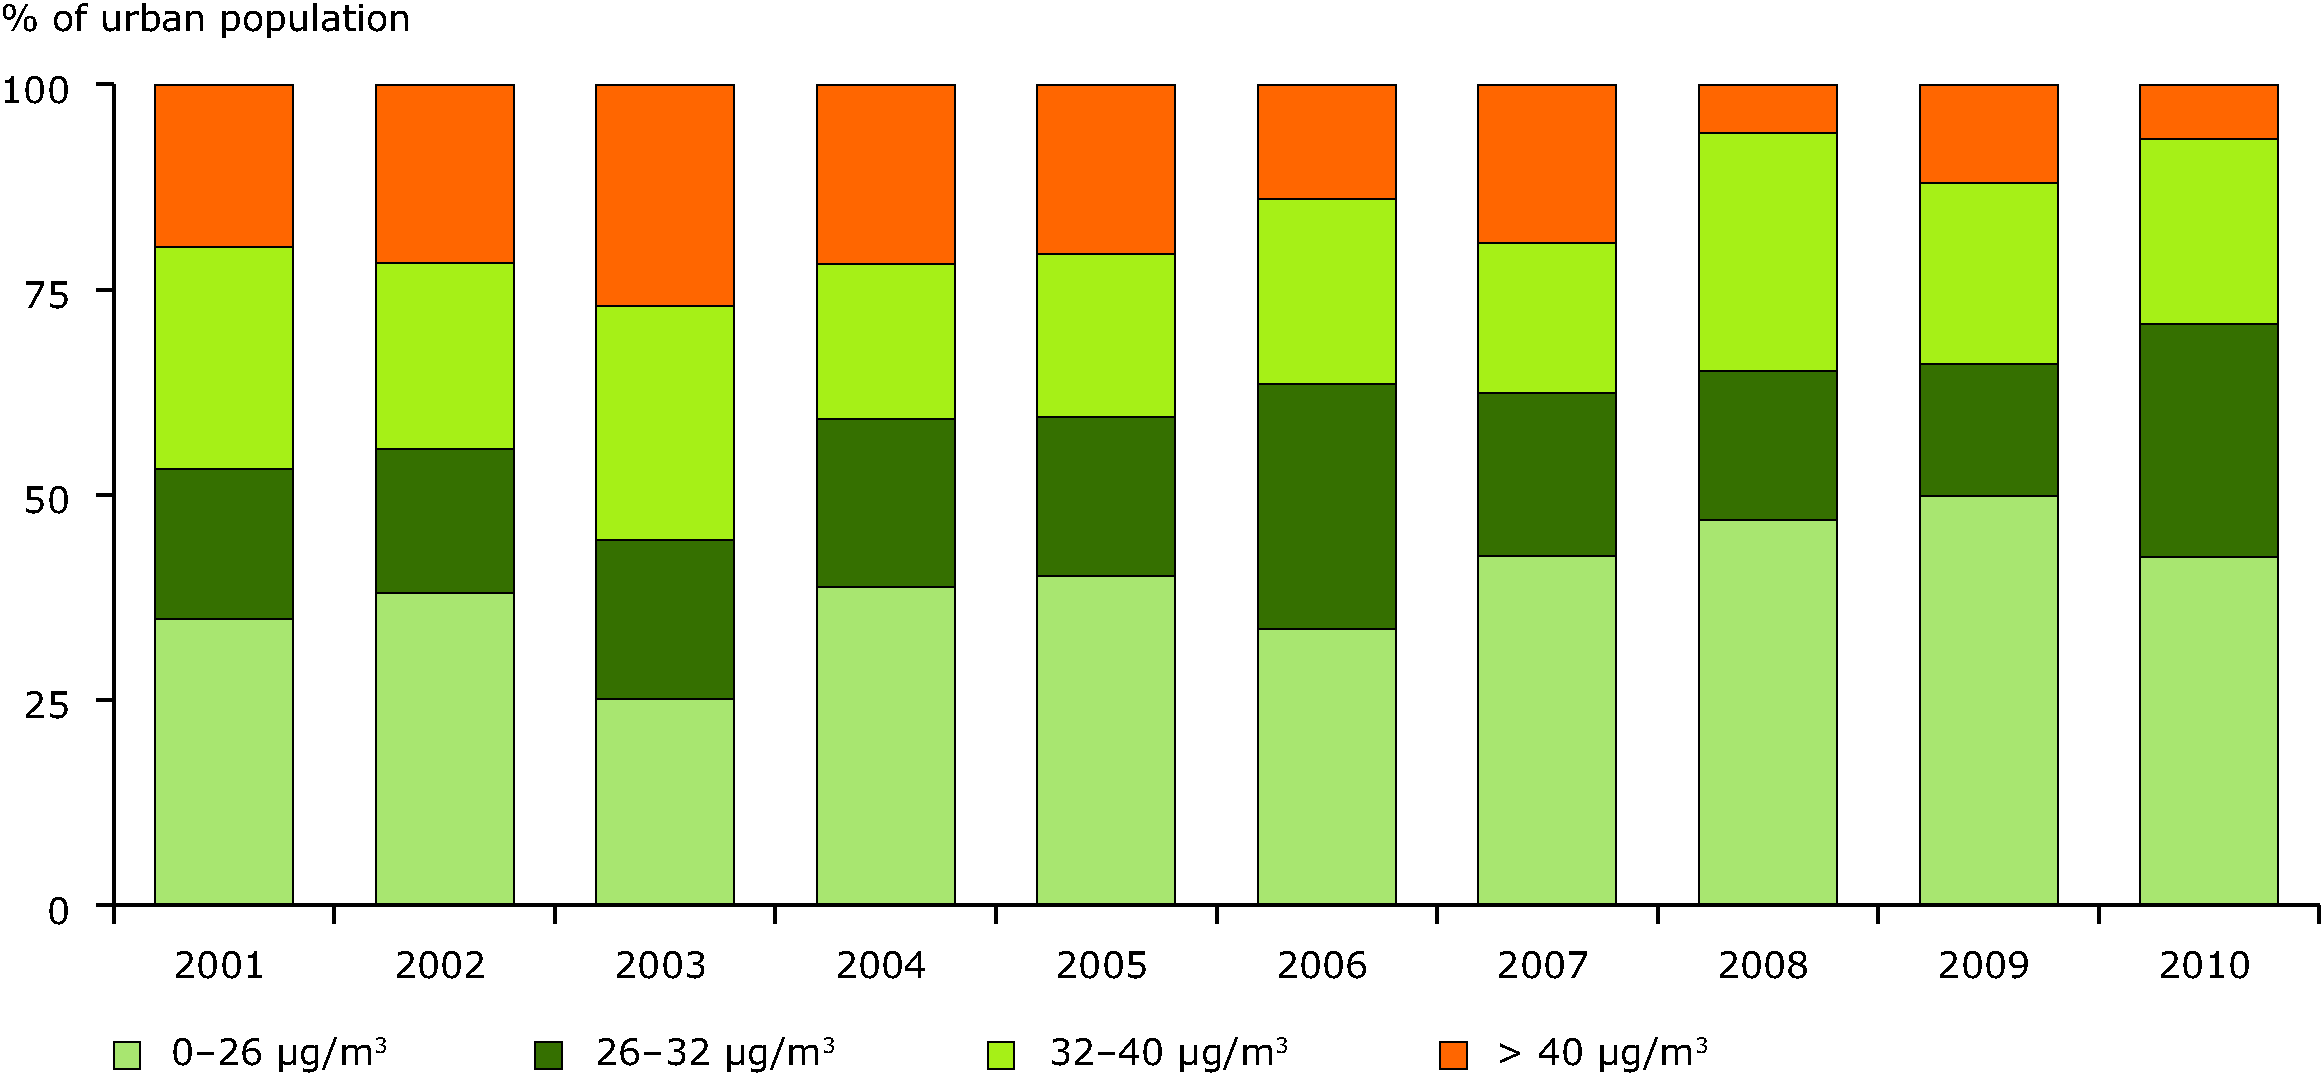 Percentage of population exposed to NO2 annual concentrations in urban areas, 2001-2010 (EU-27)